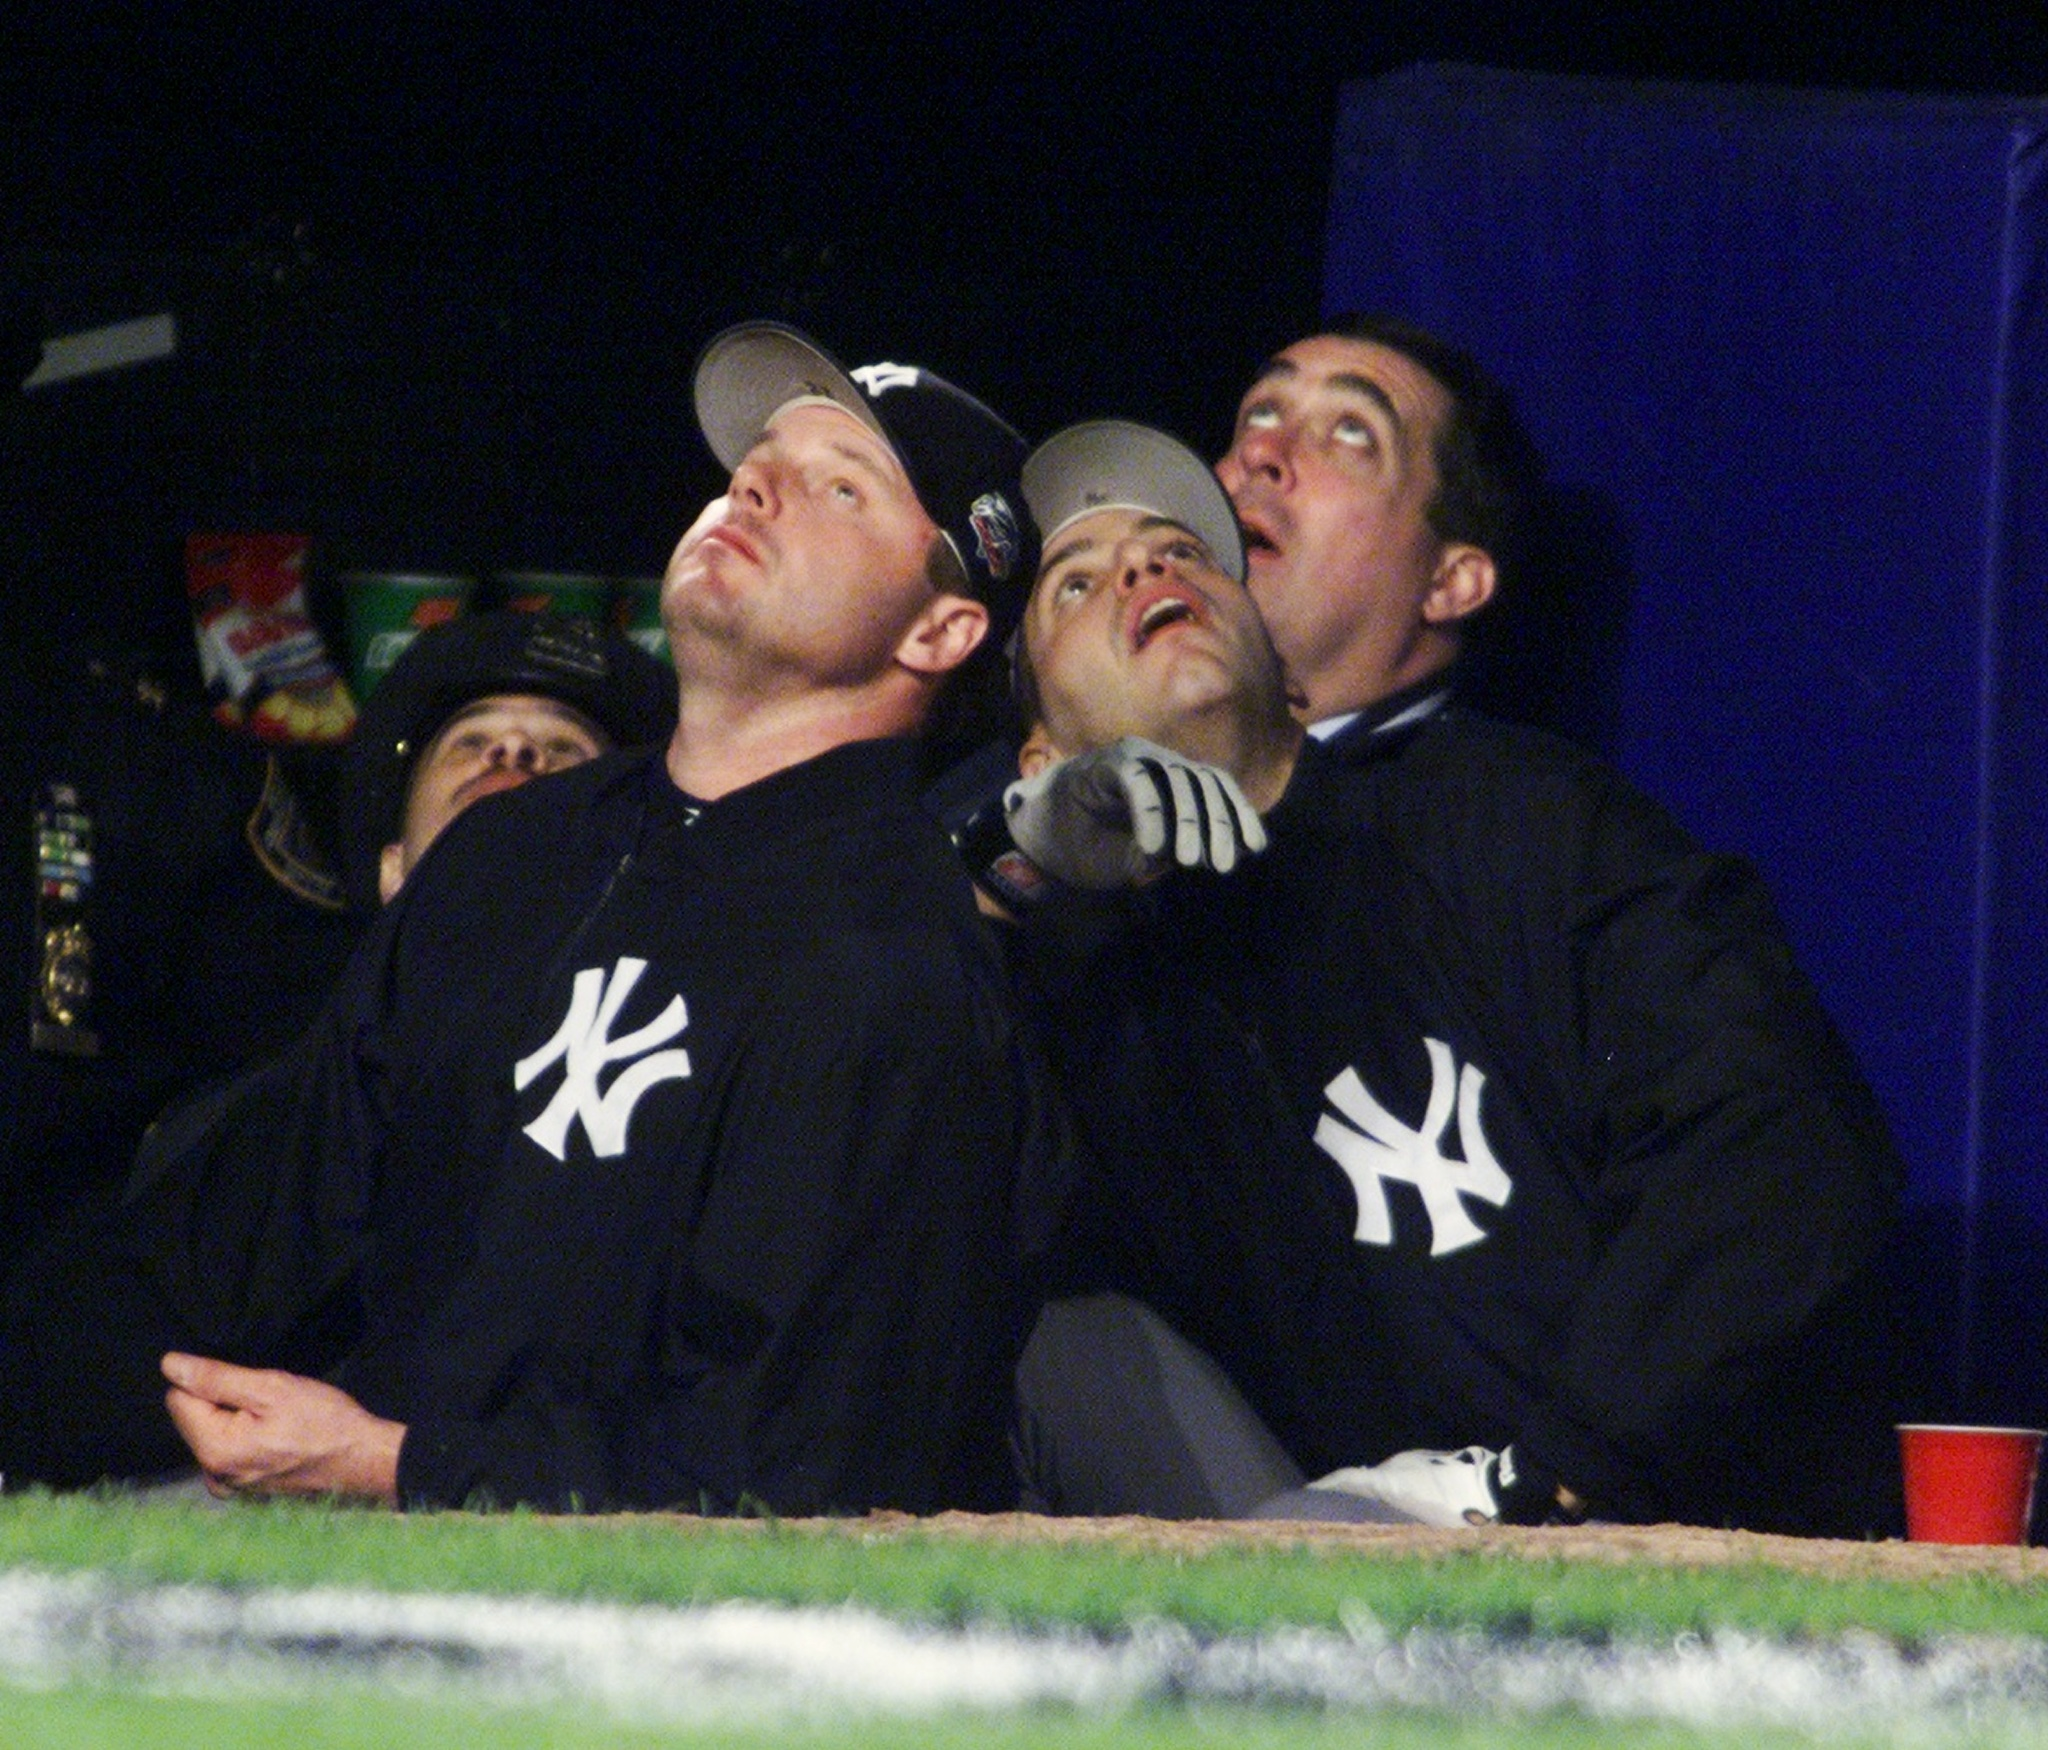 New York Yankees pitchers Roger Clemens (left) and Andy Pettitte